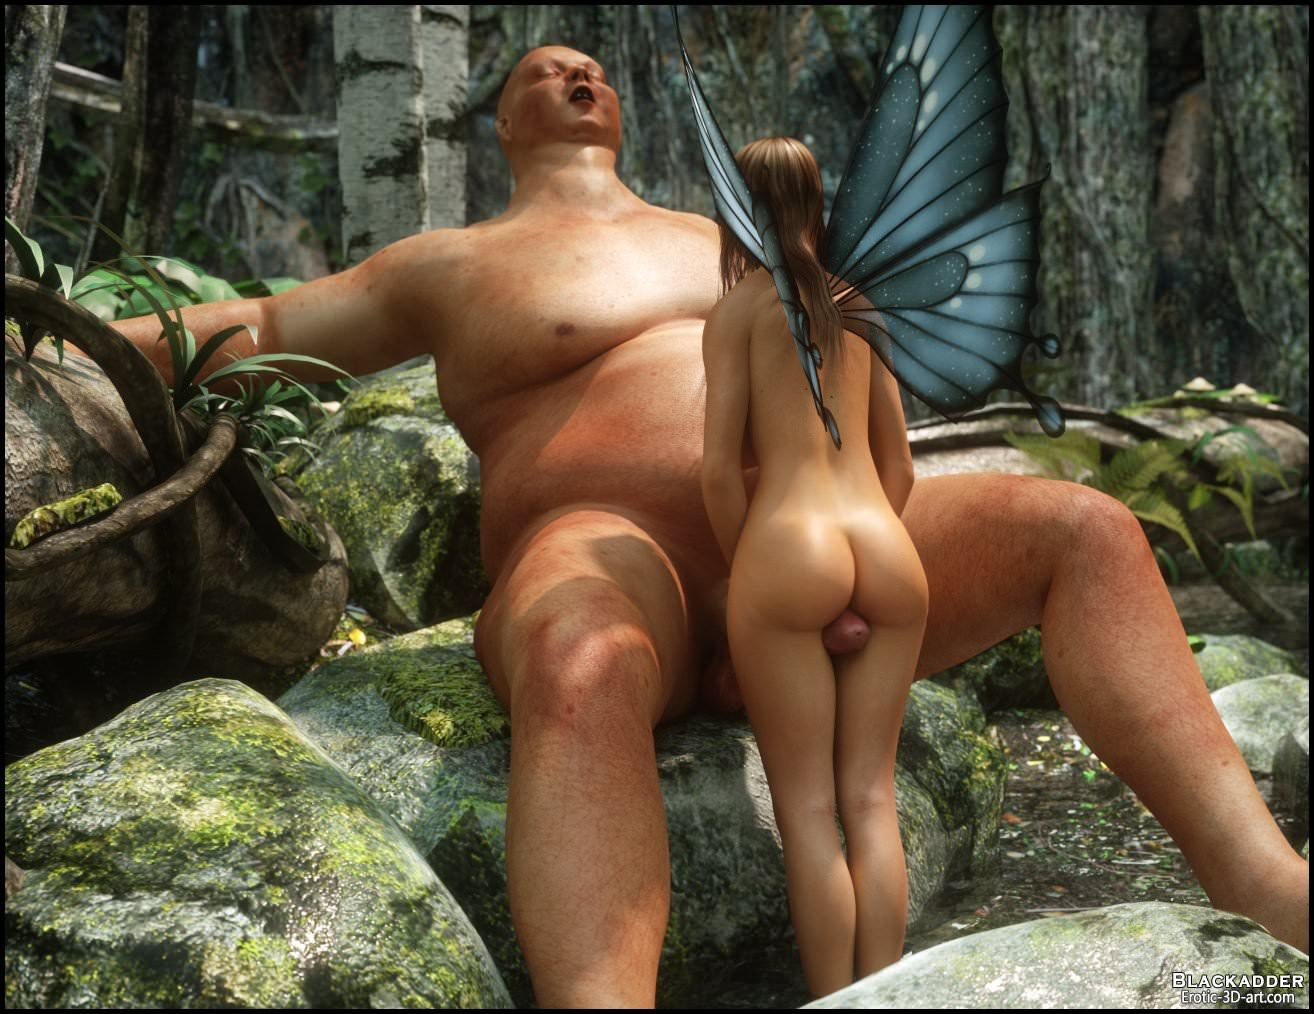 Animal Beast Porn beauty and the beast with huge cock - 3d, porn comics online